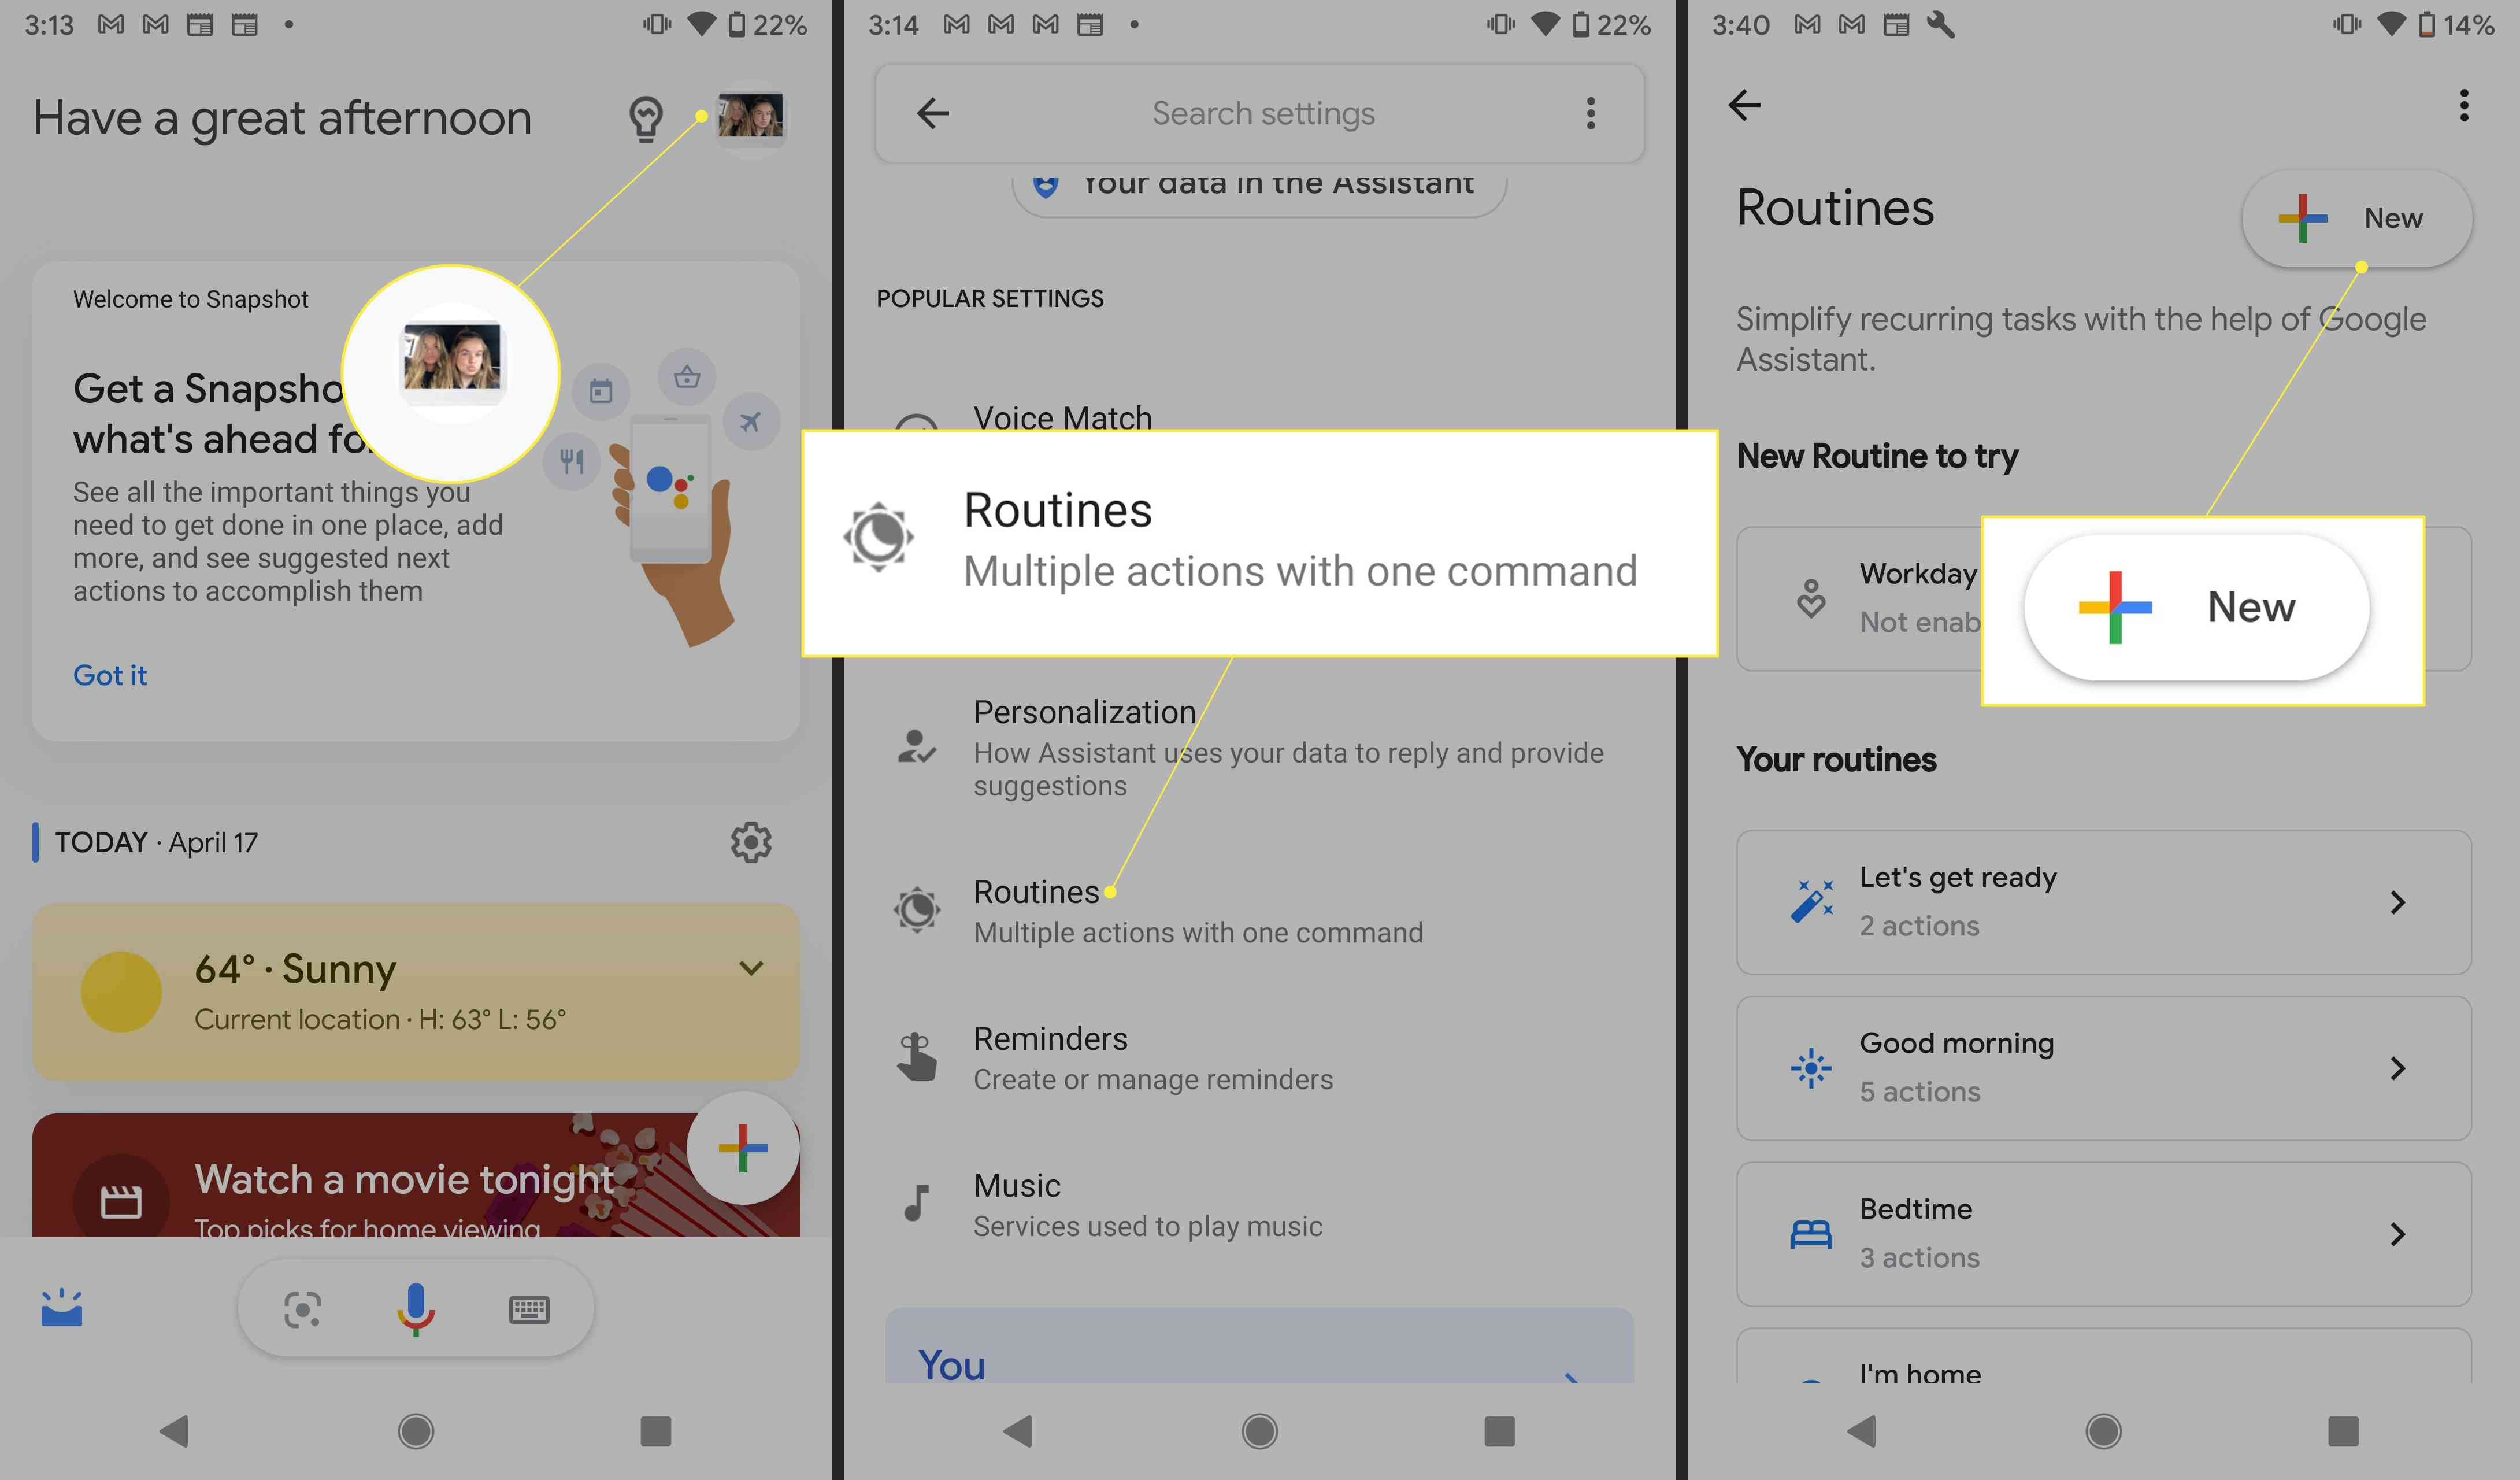 Google Assistant app with profile picture, routines, and New highlighted